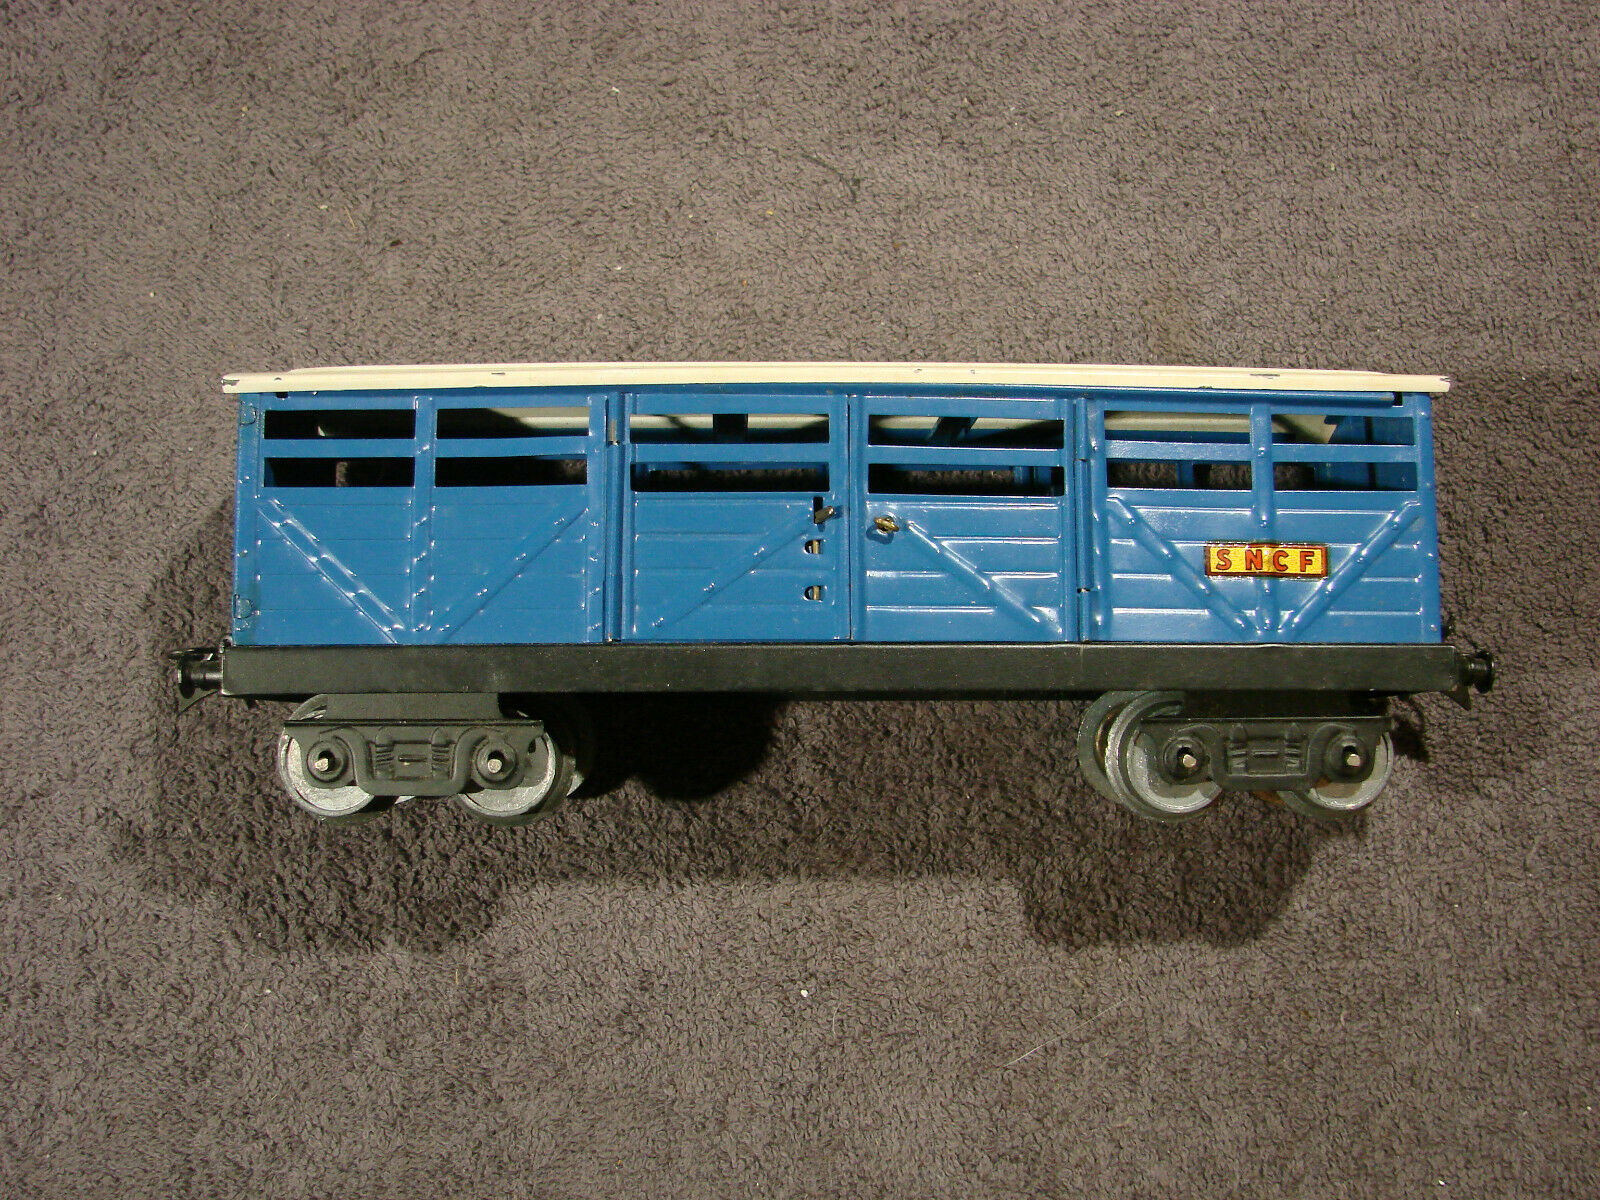 WAGON A BESTIAUX TRAIN ANCIEN SERIE ECHELLE 0 HORNBY